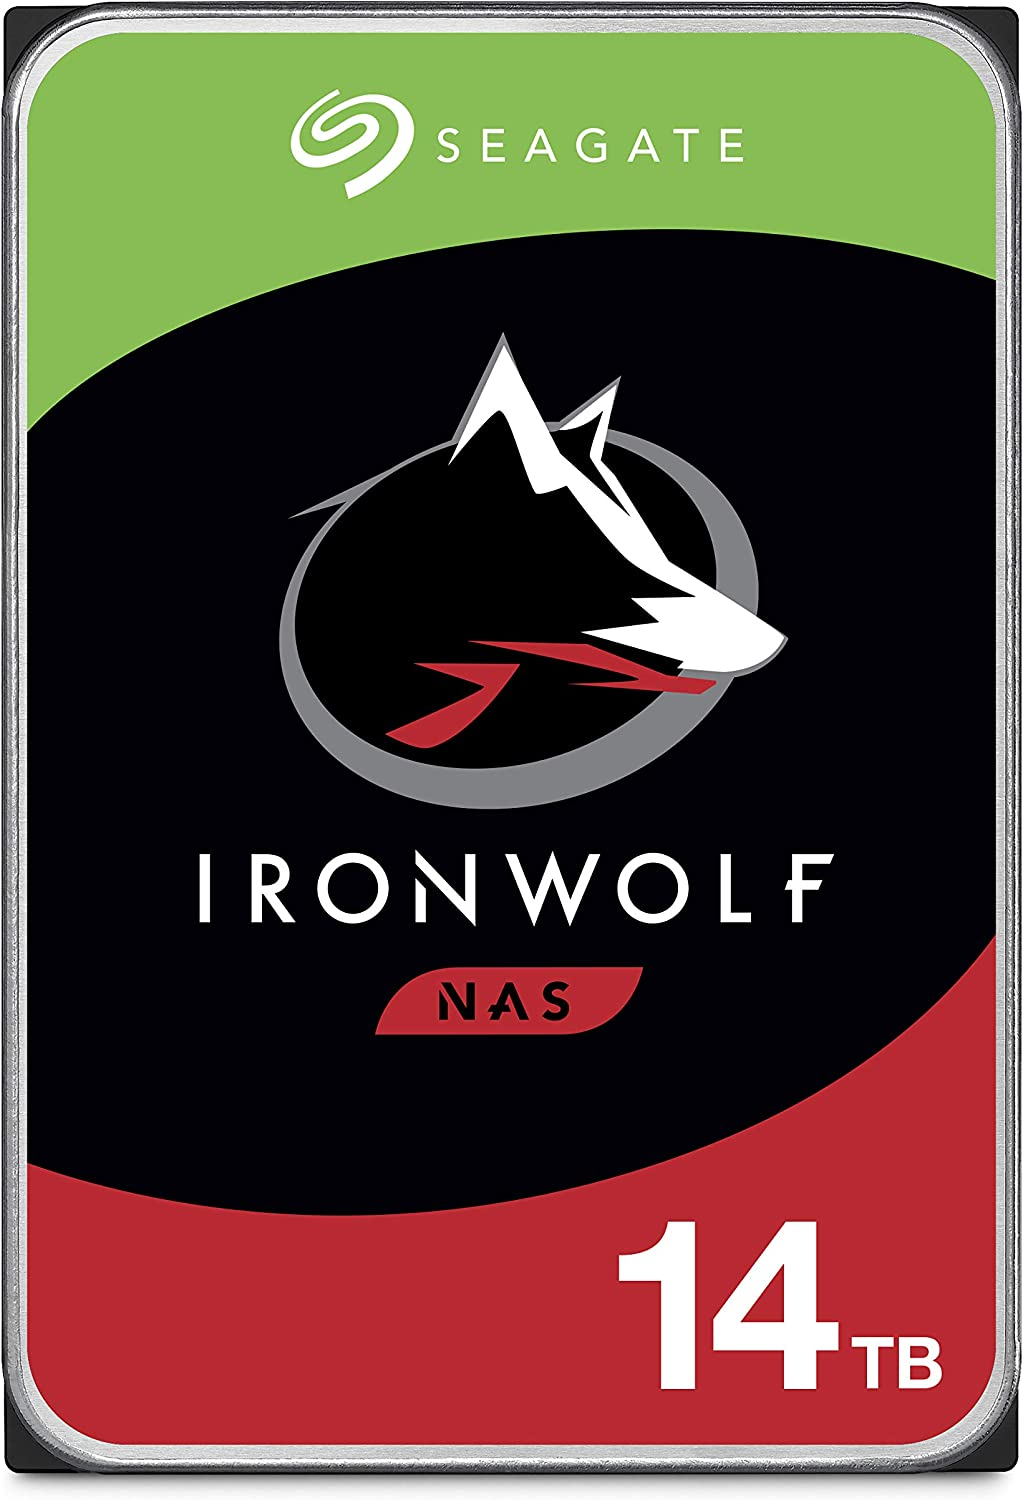 Seagate IronWolf 14TB NAS Internal Hard Drive HDD – CMR 3.5 Inch SATA 256MB Cache for RAID Network Attached Storage – Frustration Free Packaging (ST14000VN0008)